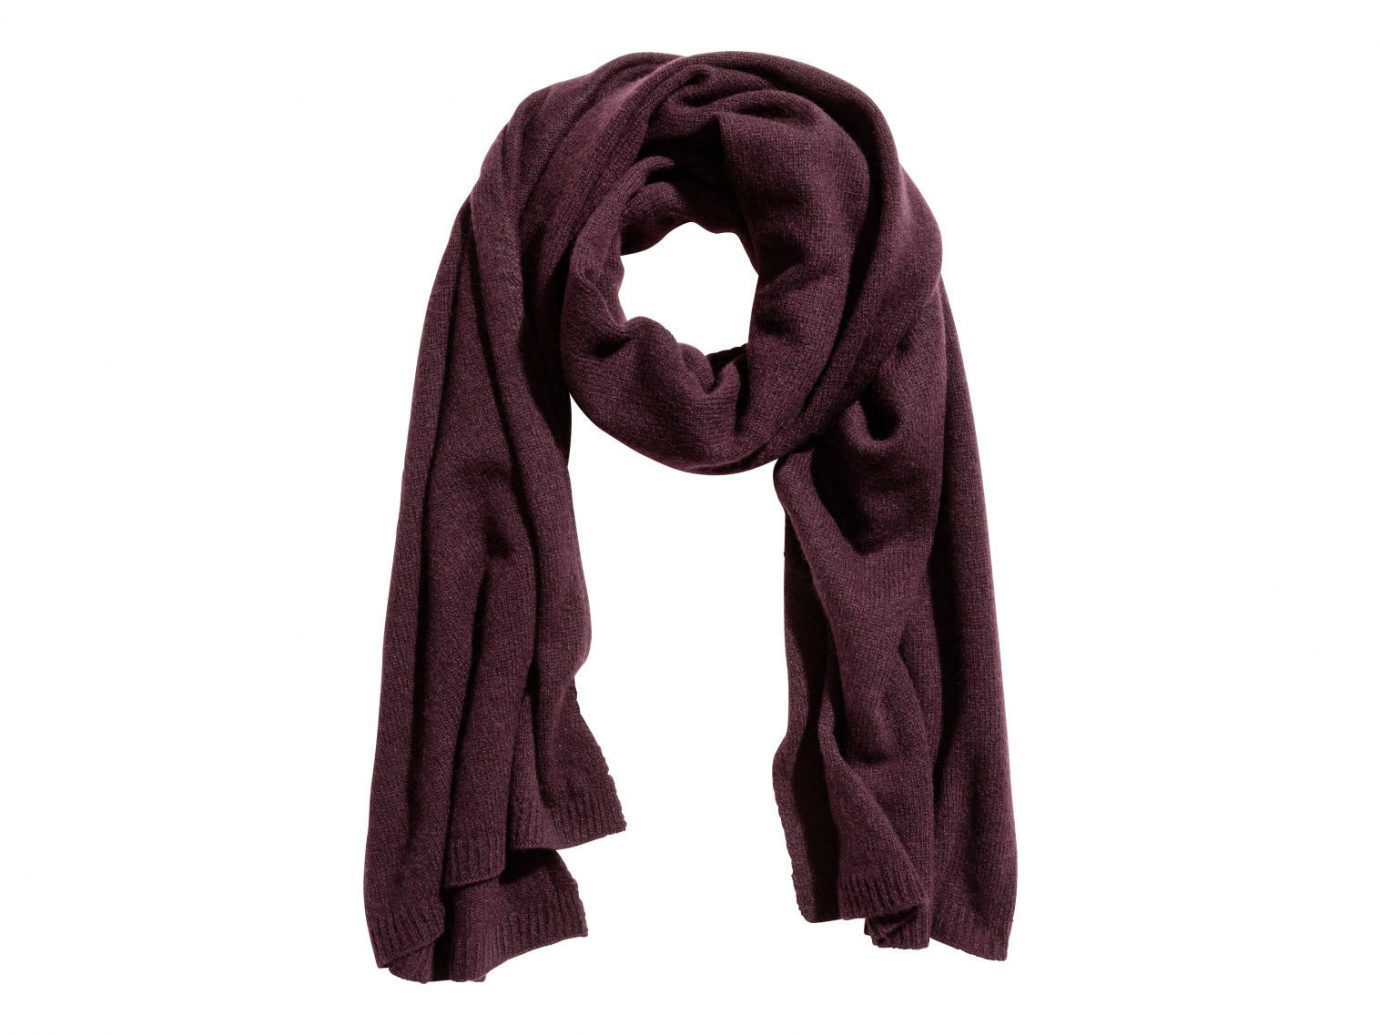 Travel Shop clothing scarf stole wearing shawl woolen